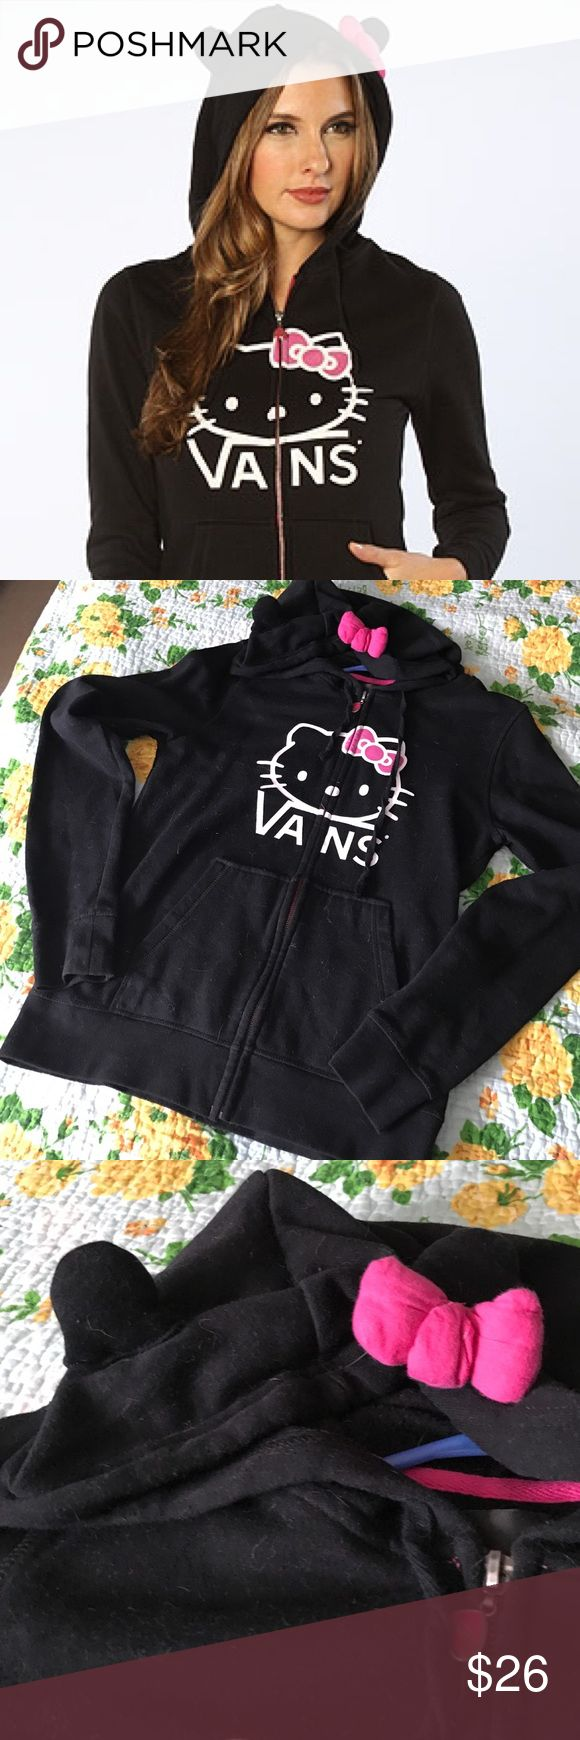 VANS Hello Kitty zip up hoodie with ears and bow. Super cute warm hoodie. Hoodie has ears and a bow accent. Like new! ✨ only worn a handful of times. (*cat/dog hair not included.*) Vans Jackets & Coats